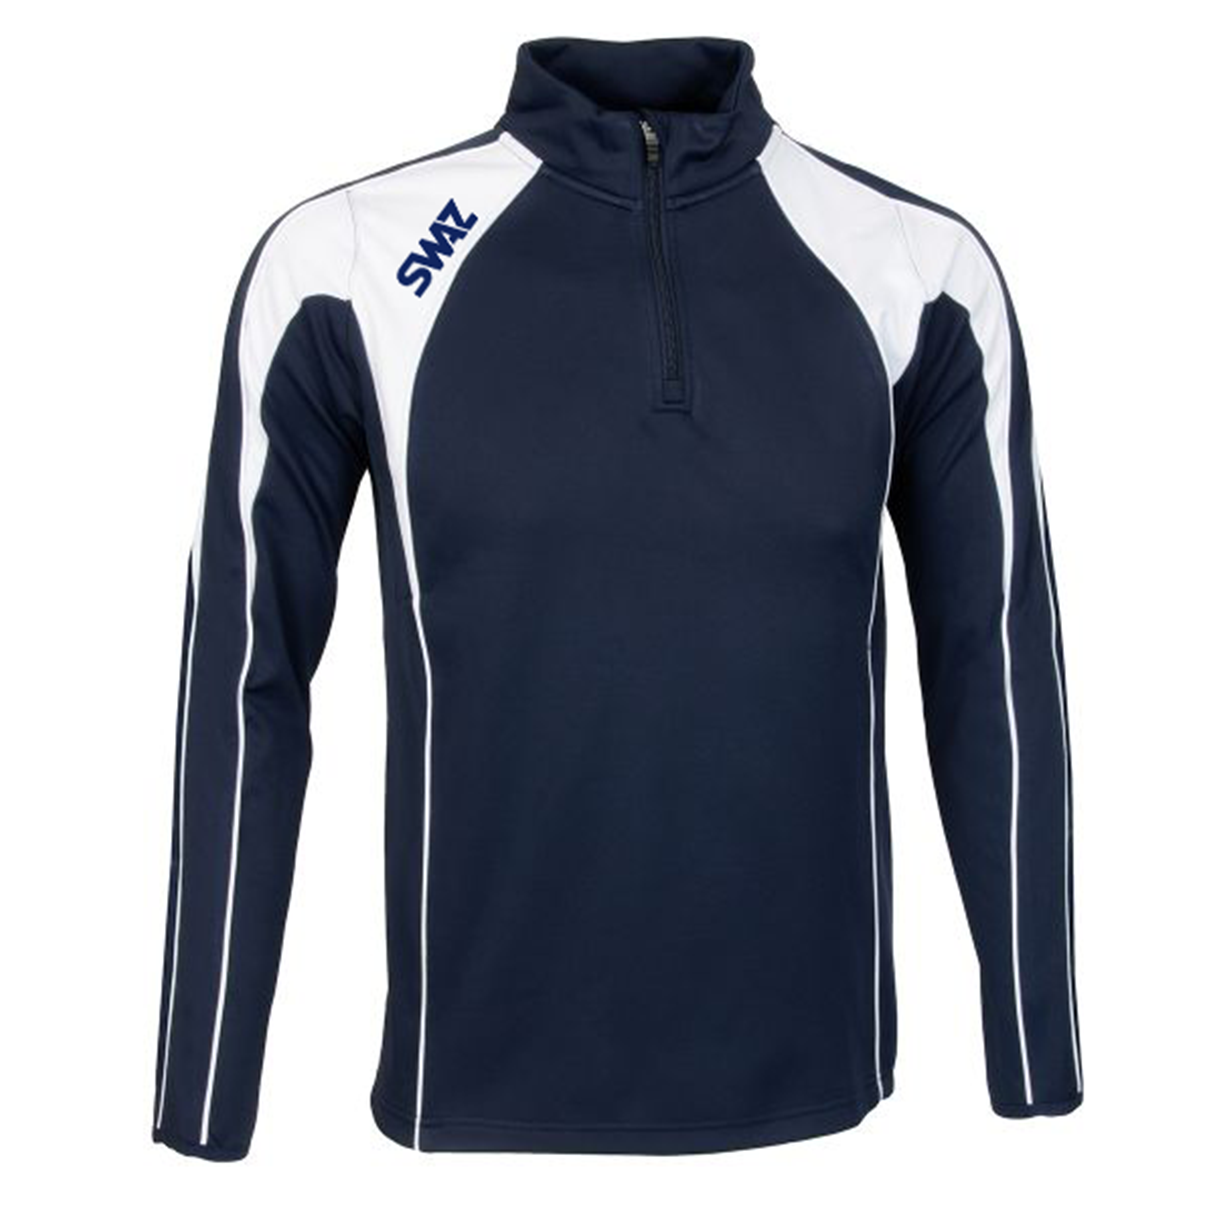 SWAZ Premier Midlayer Navy/White